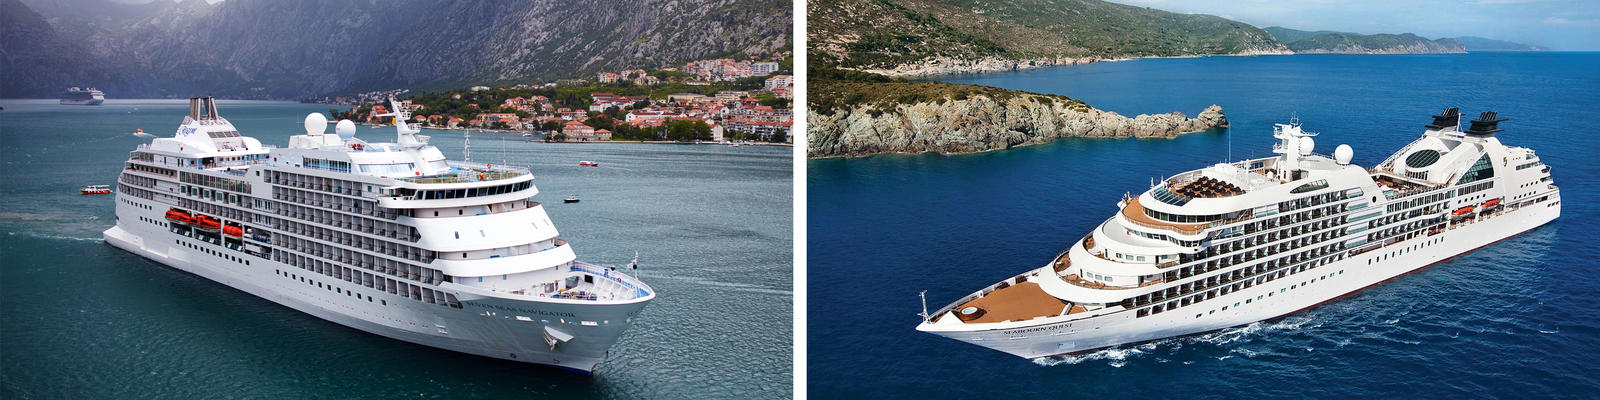 Regent Seven Seas Cruises vs. Seabourn Cruise Line (Photo: Regent & Seabourn)